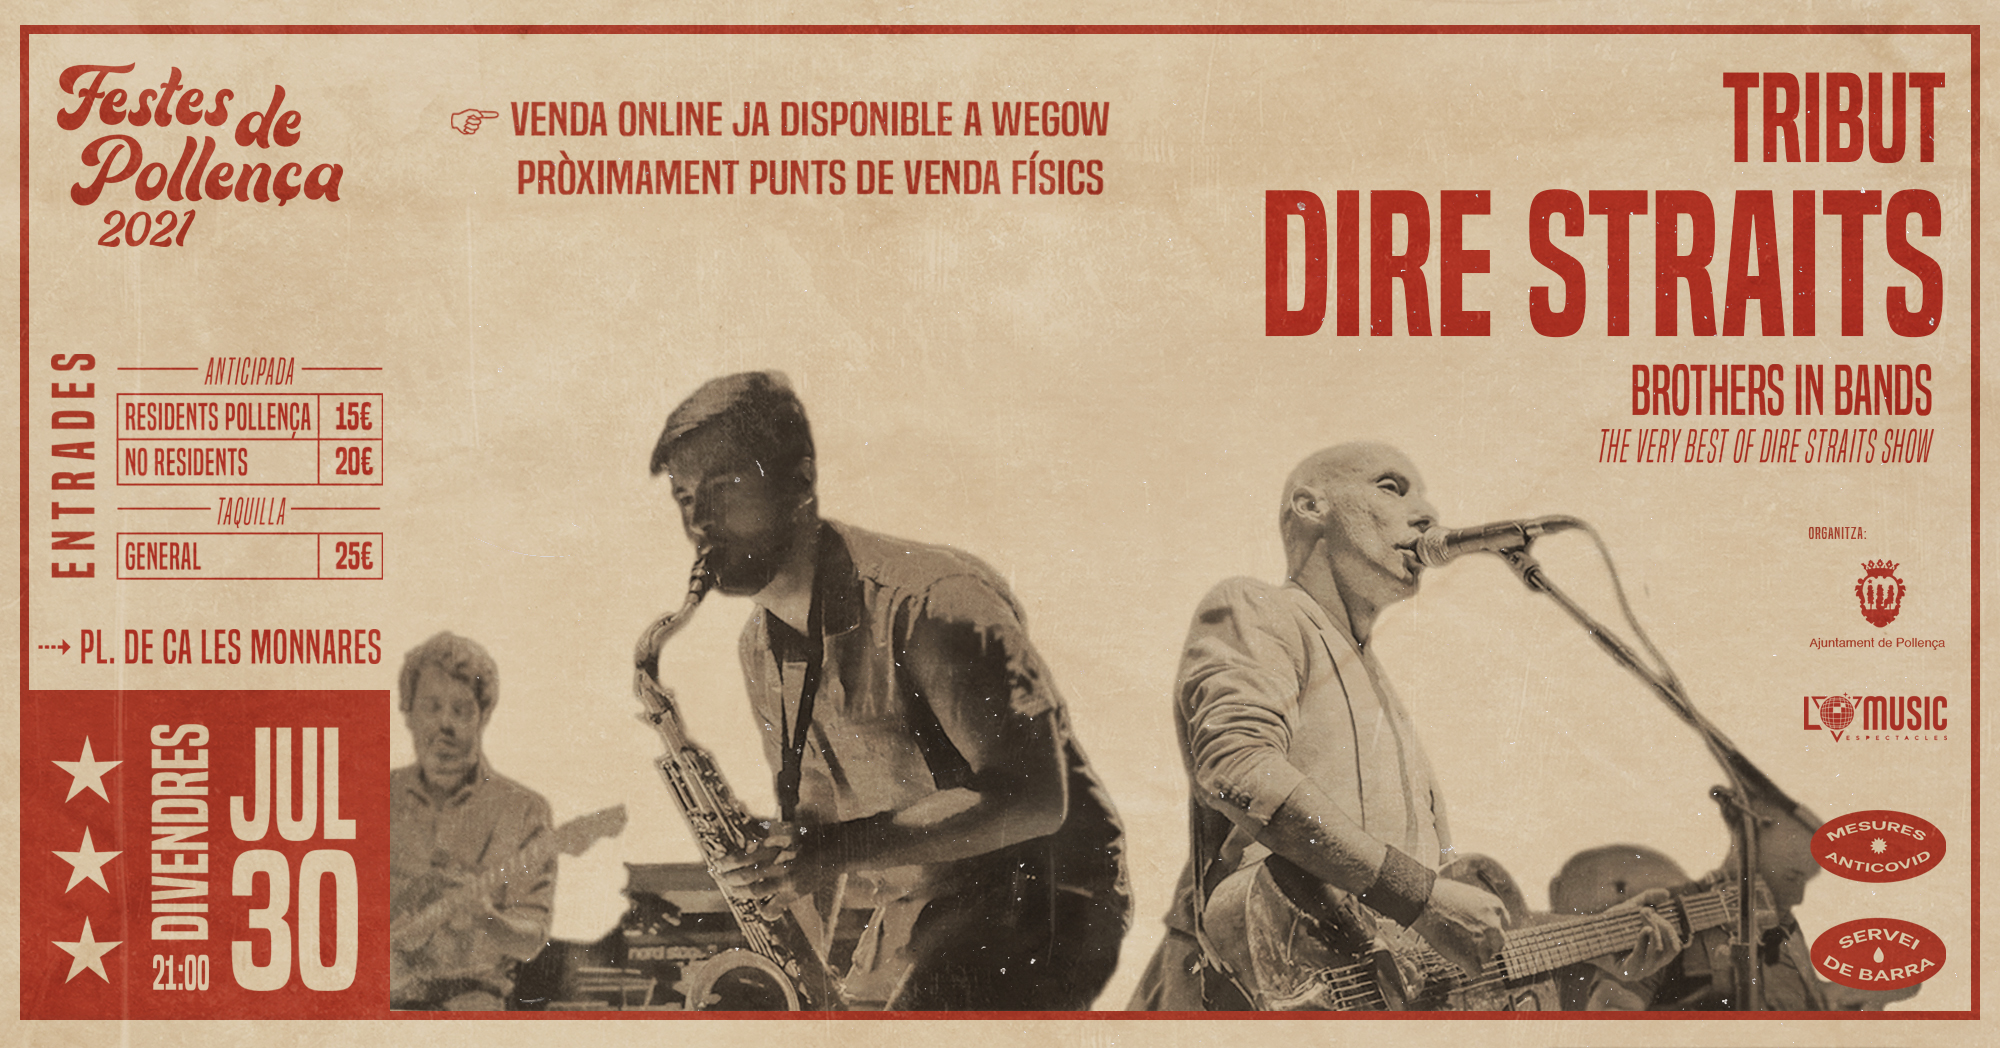 brothers in band tributo the dire straits en pollenca mallorca 16243605400141153